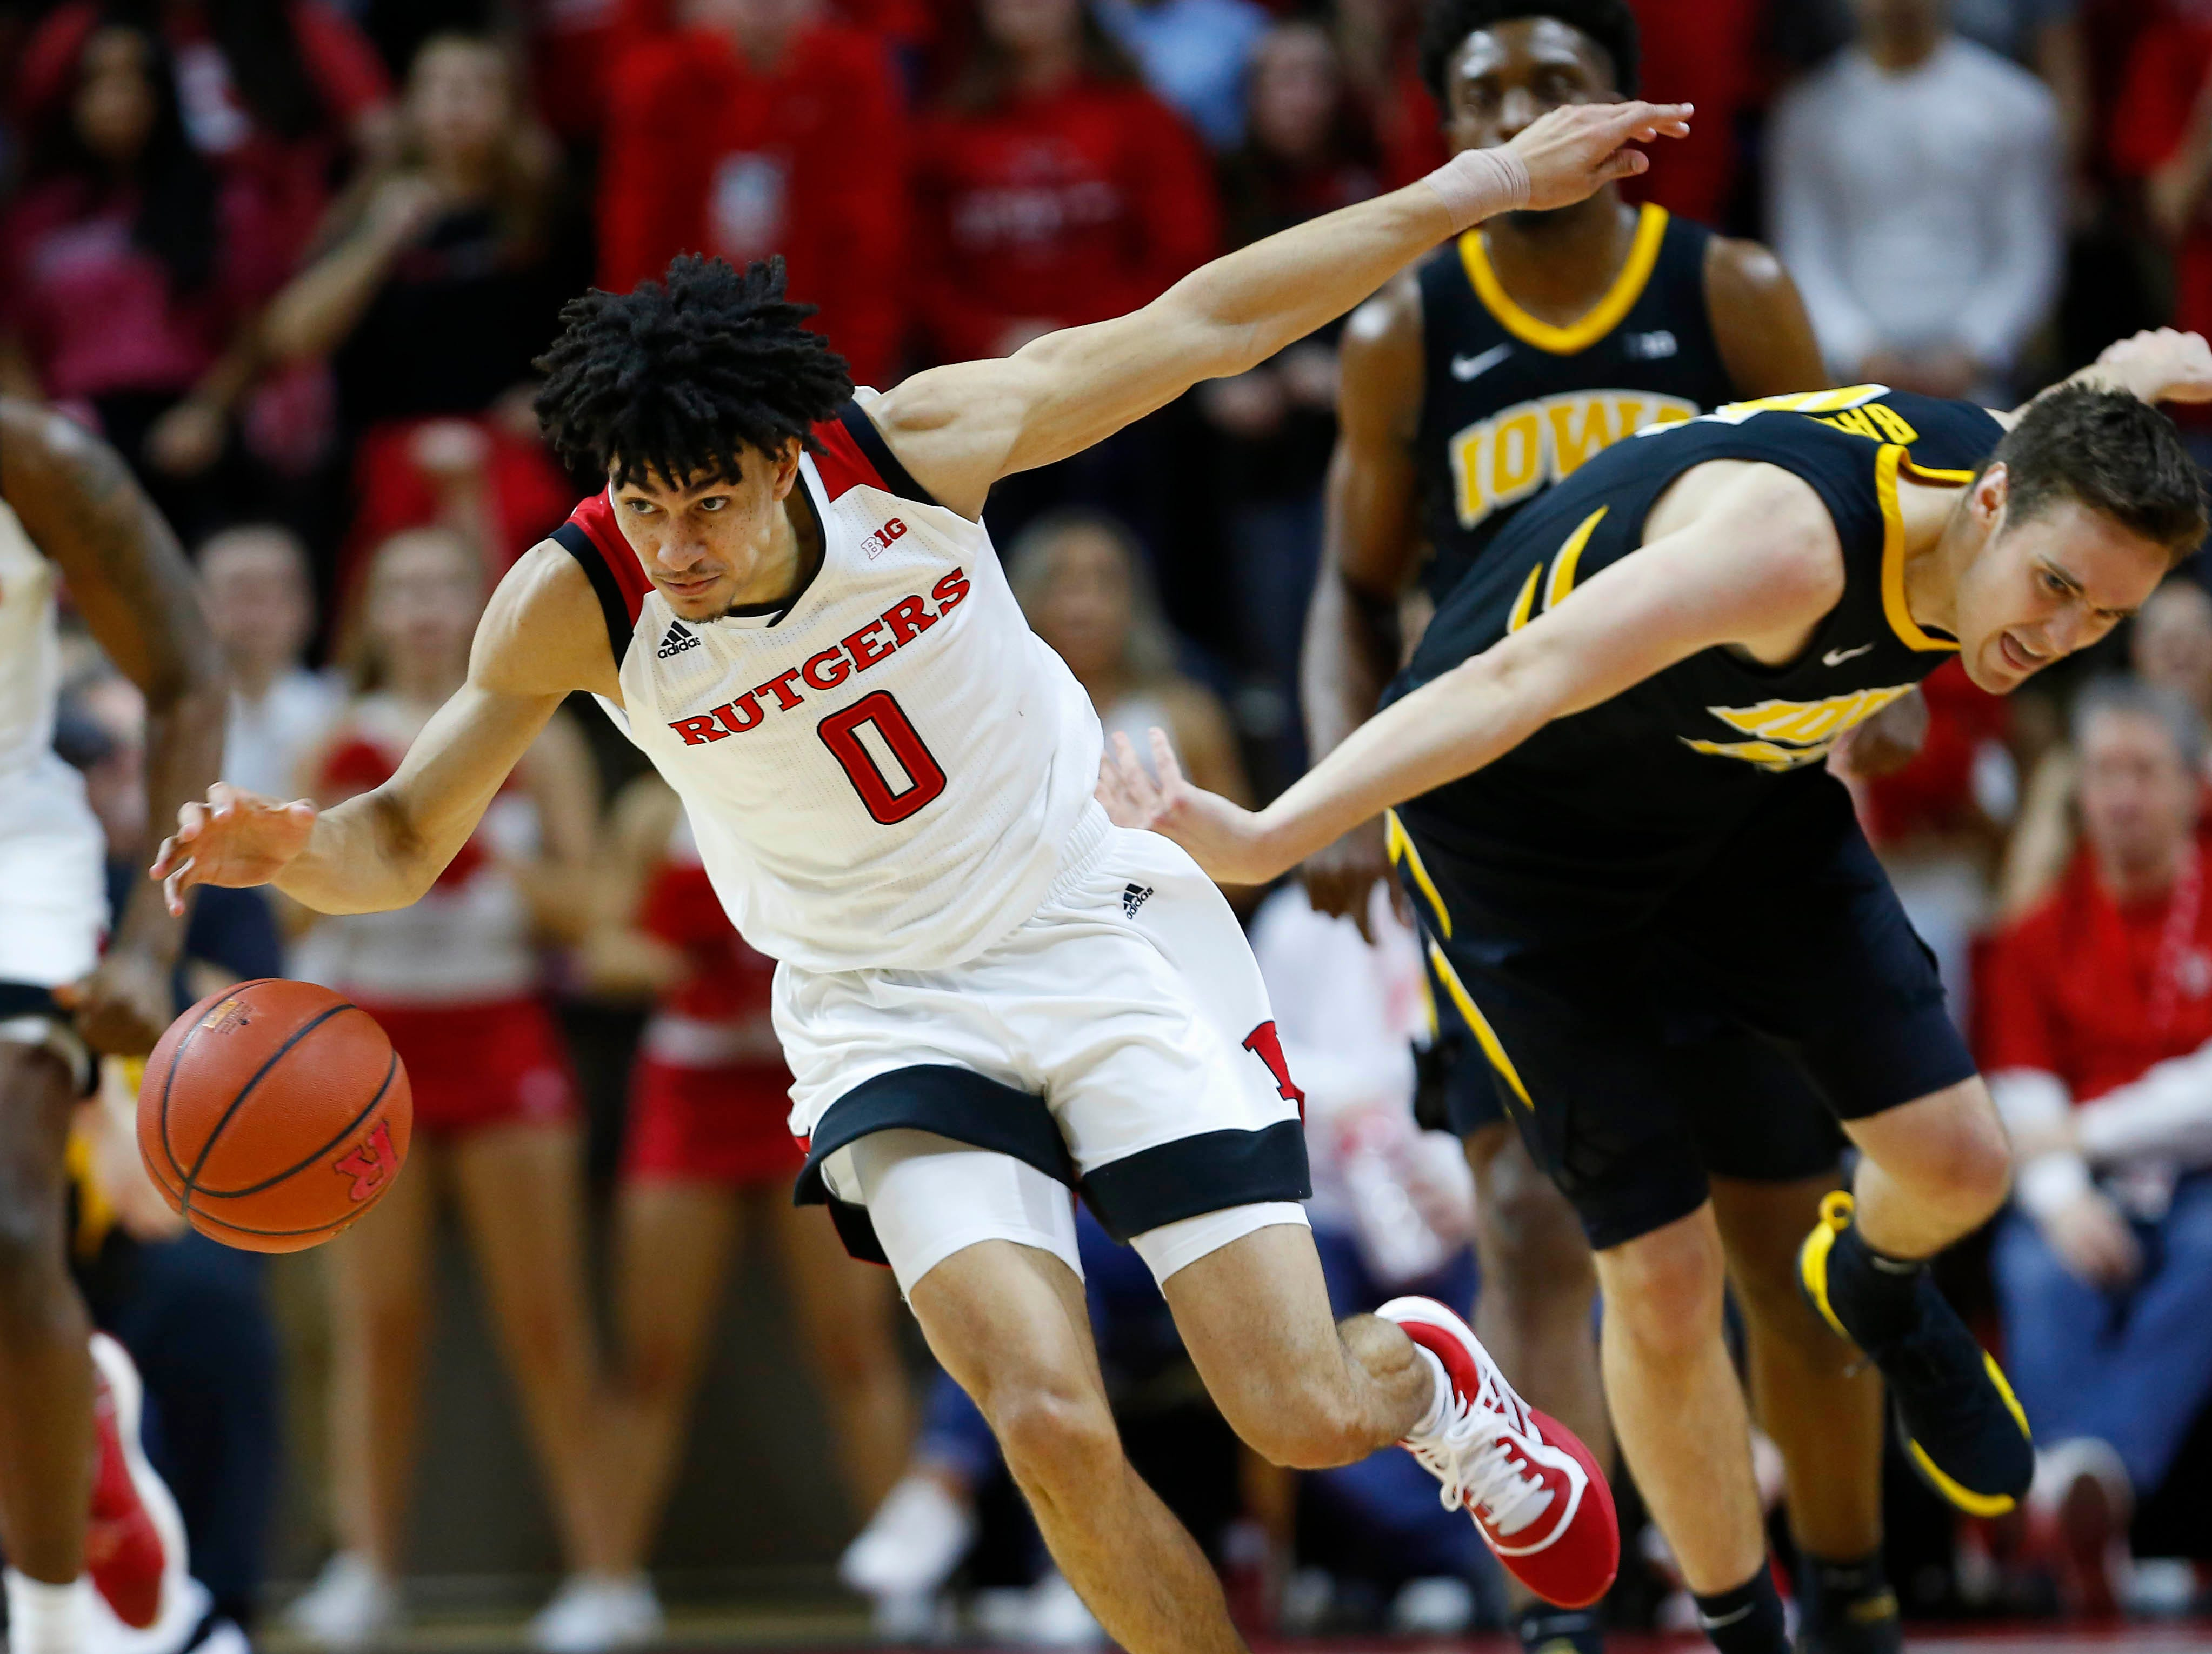 Rutgers Scarlet Knights guard Geo Baker (0) dribbles the ball against Iowa Hawkeyes forward Nicholas Baer (51) during the second half at Rutgers Athletic Center (RAC). Mandatory Credit: Noah K. Murray-USA TODAY Sports